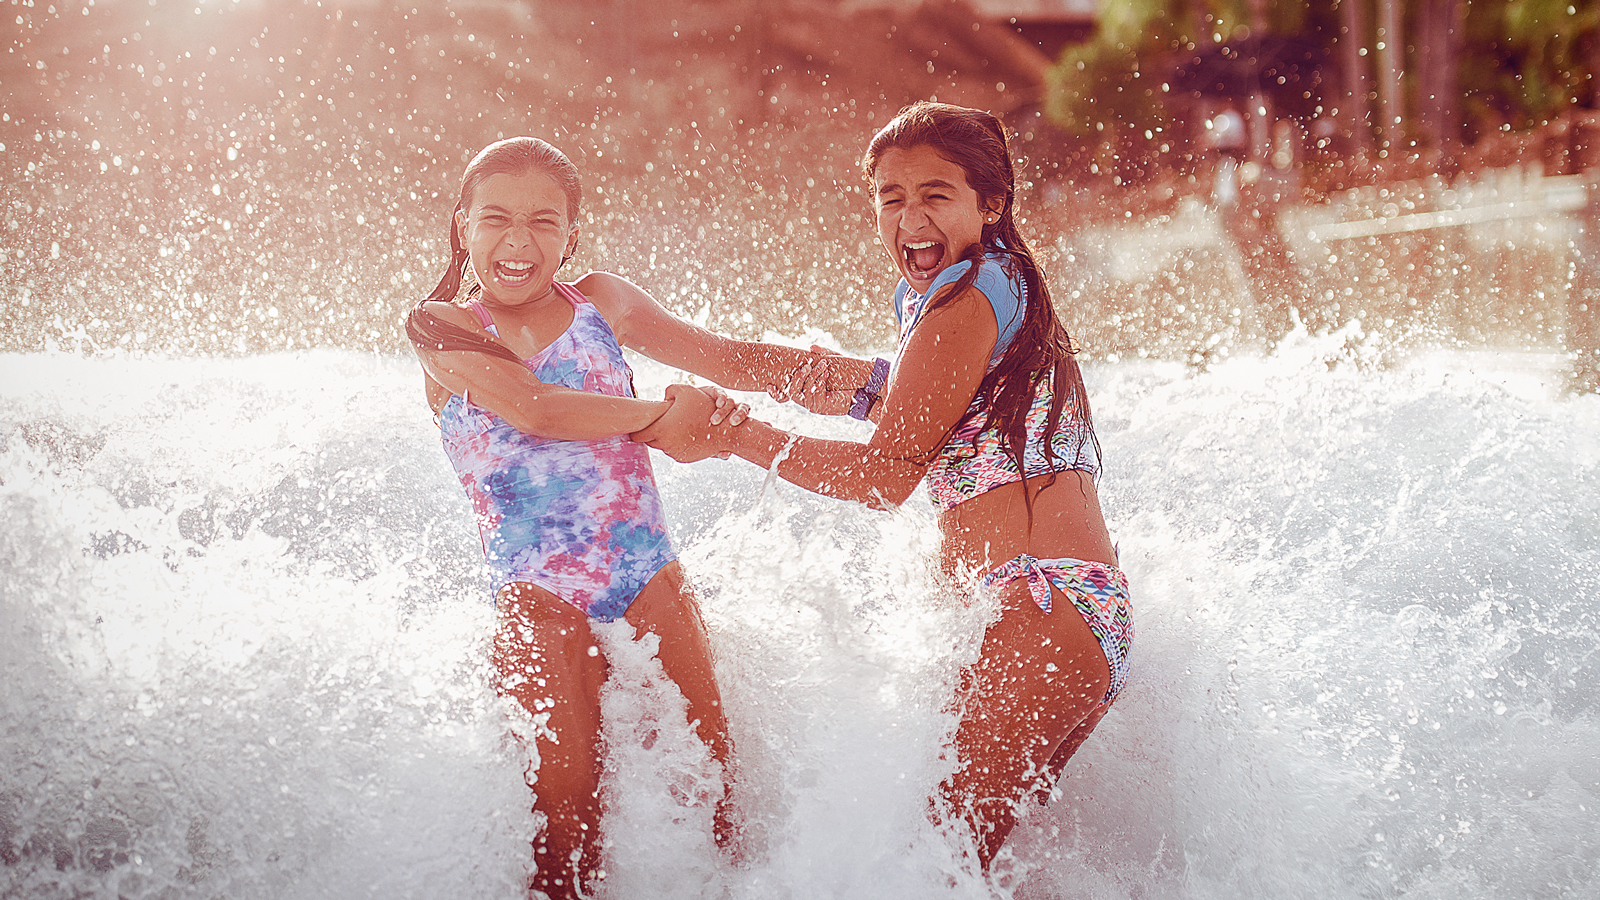 Enjoy Thrills & Chills at Two Splash-Tastic Water Parks